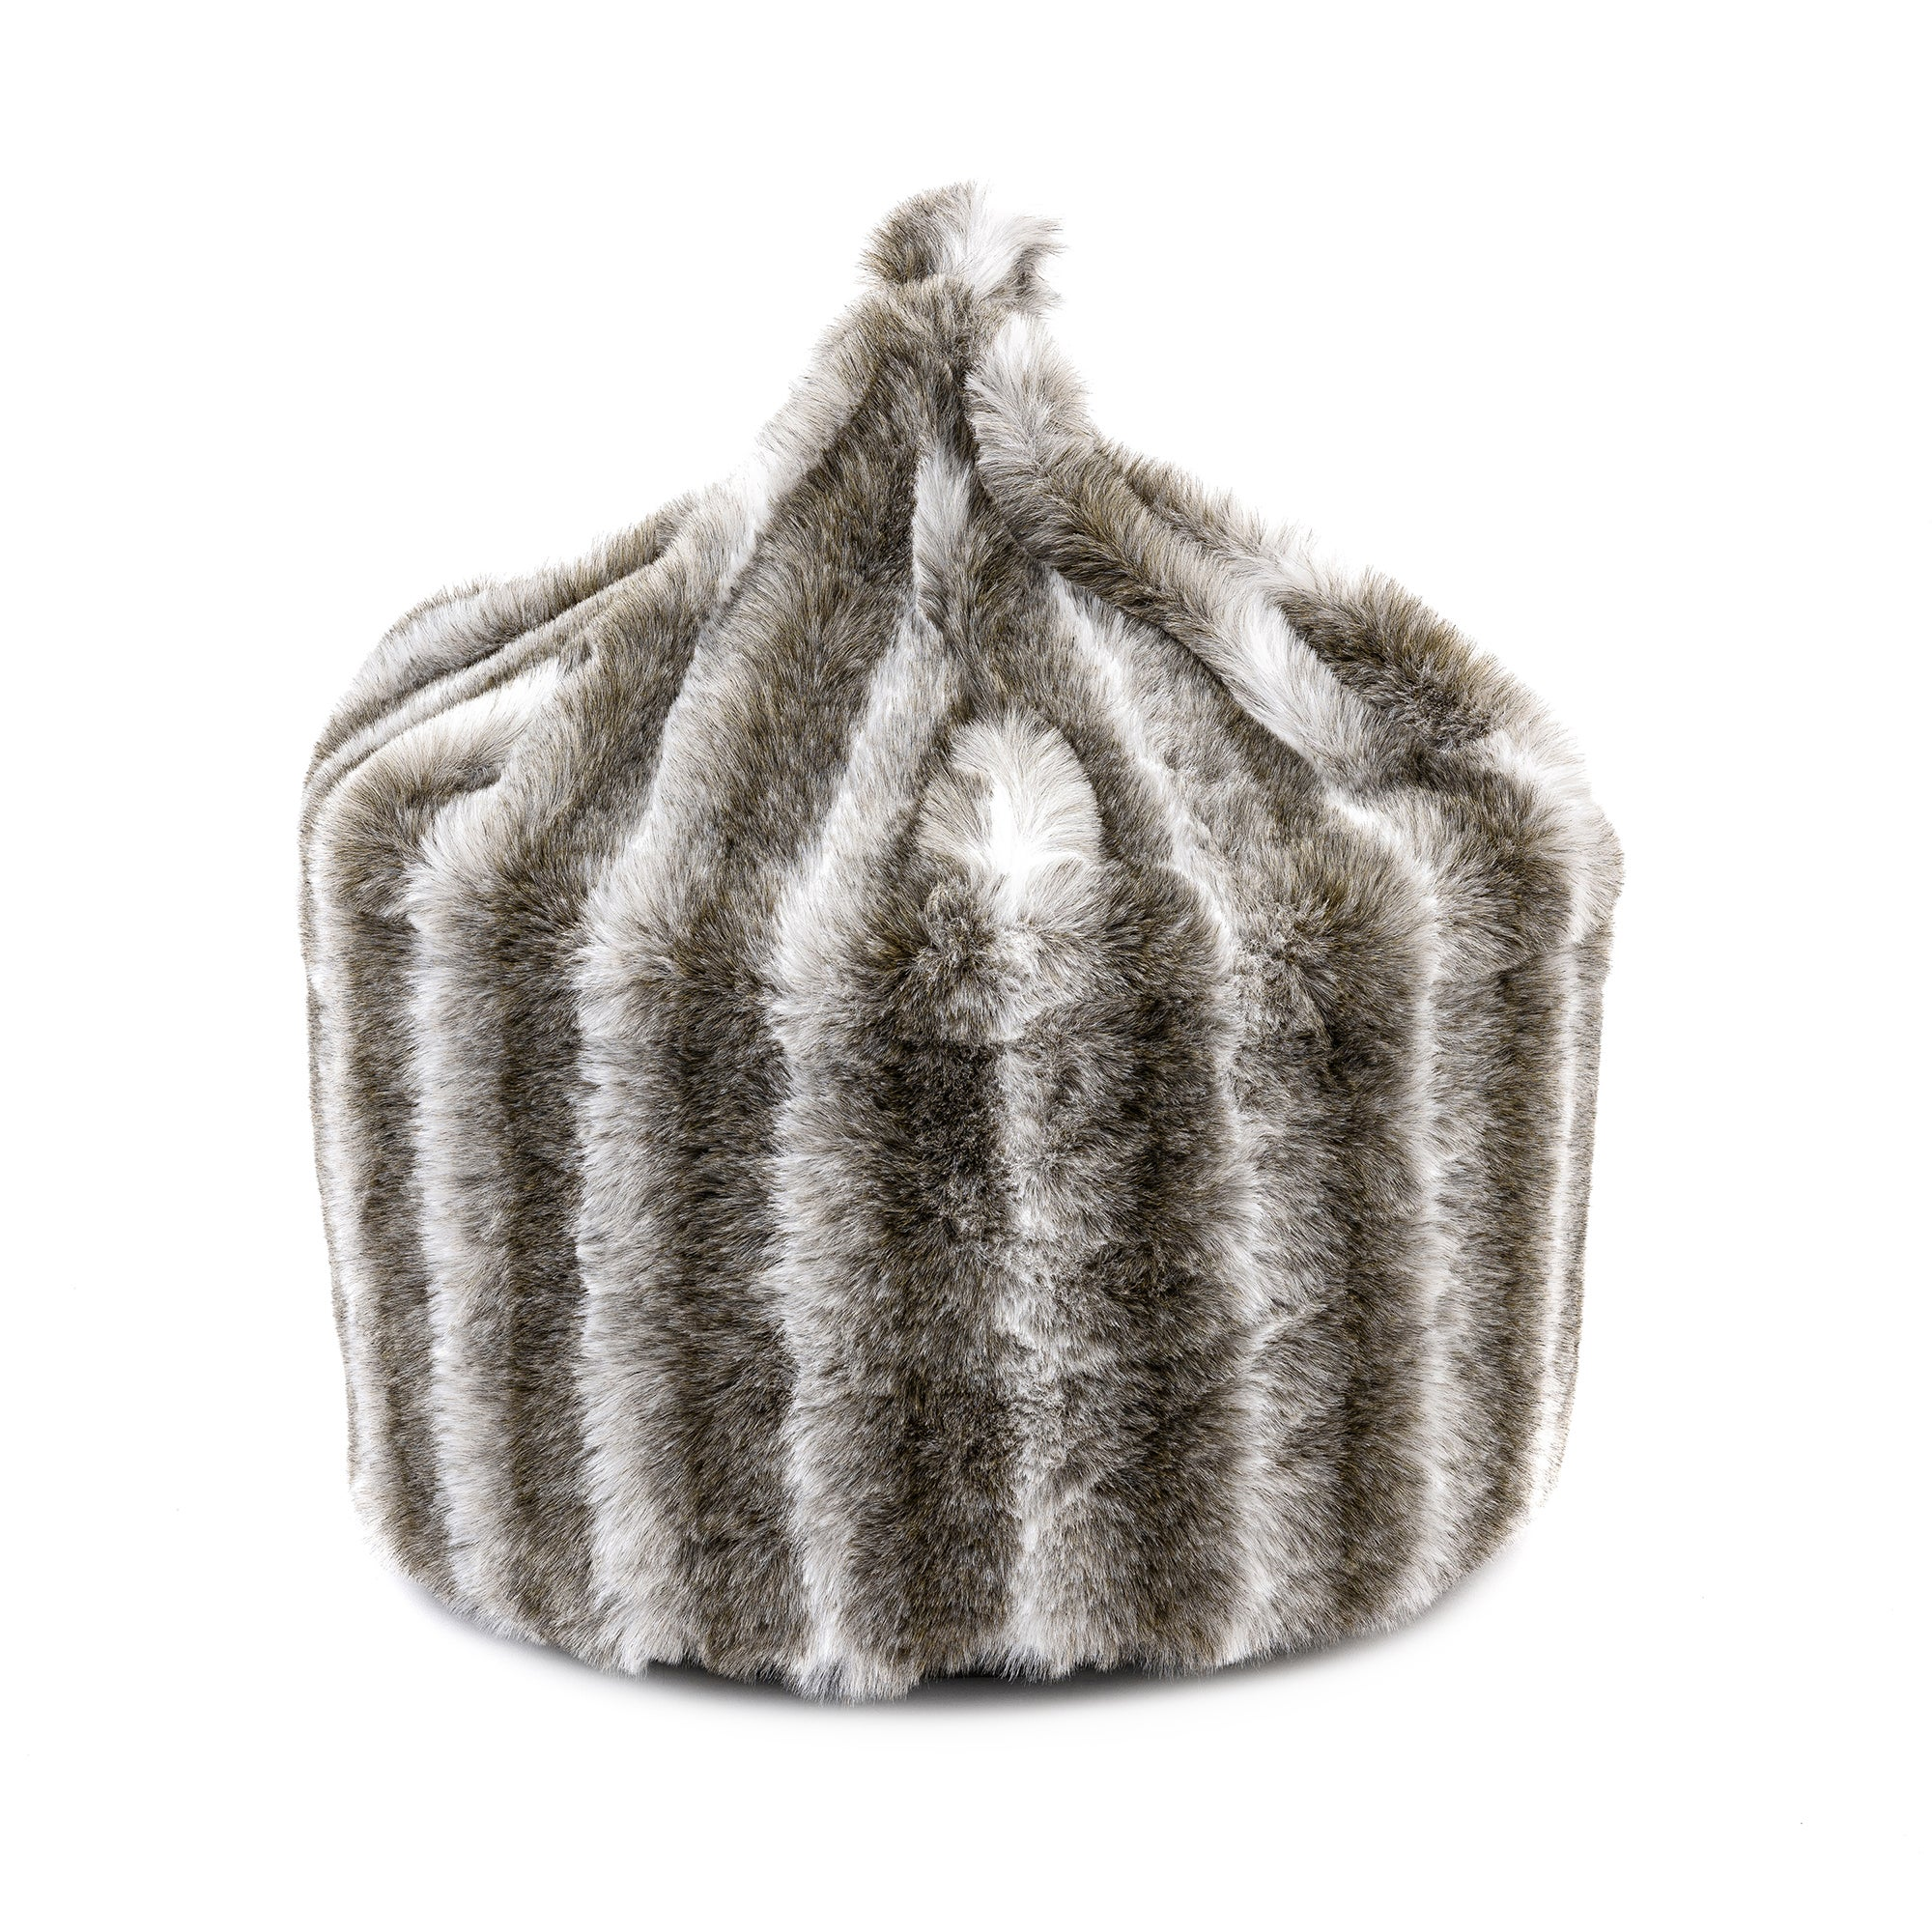 Pure Luxury Faux Fur Bean Bag